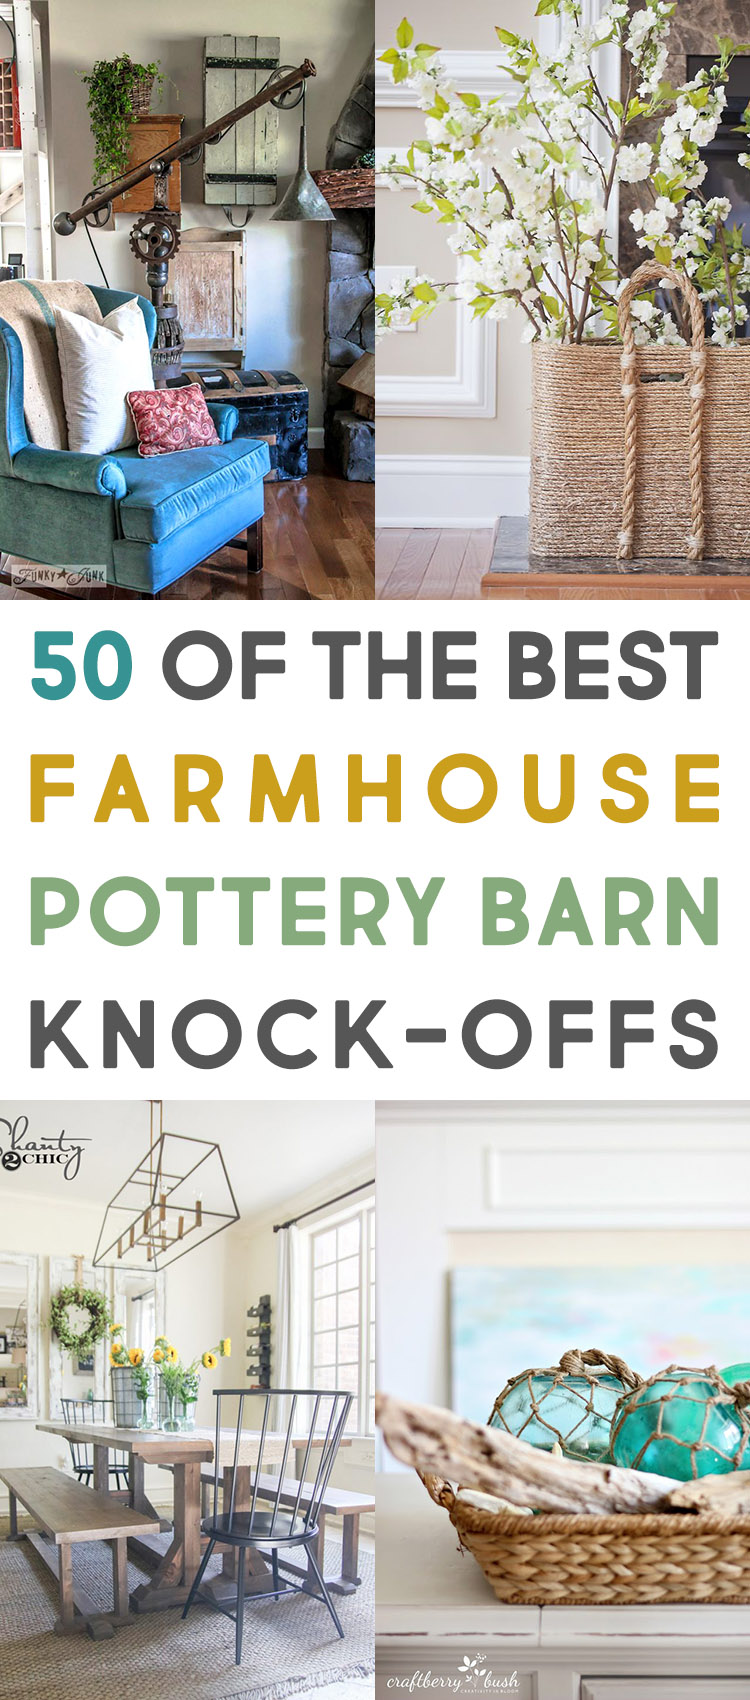 50 Of The Best Farmhouse Pottery Barn Knock Offs The Cottage Market